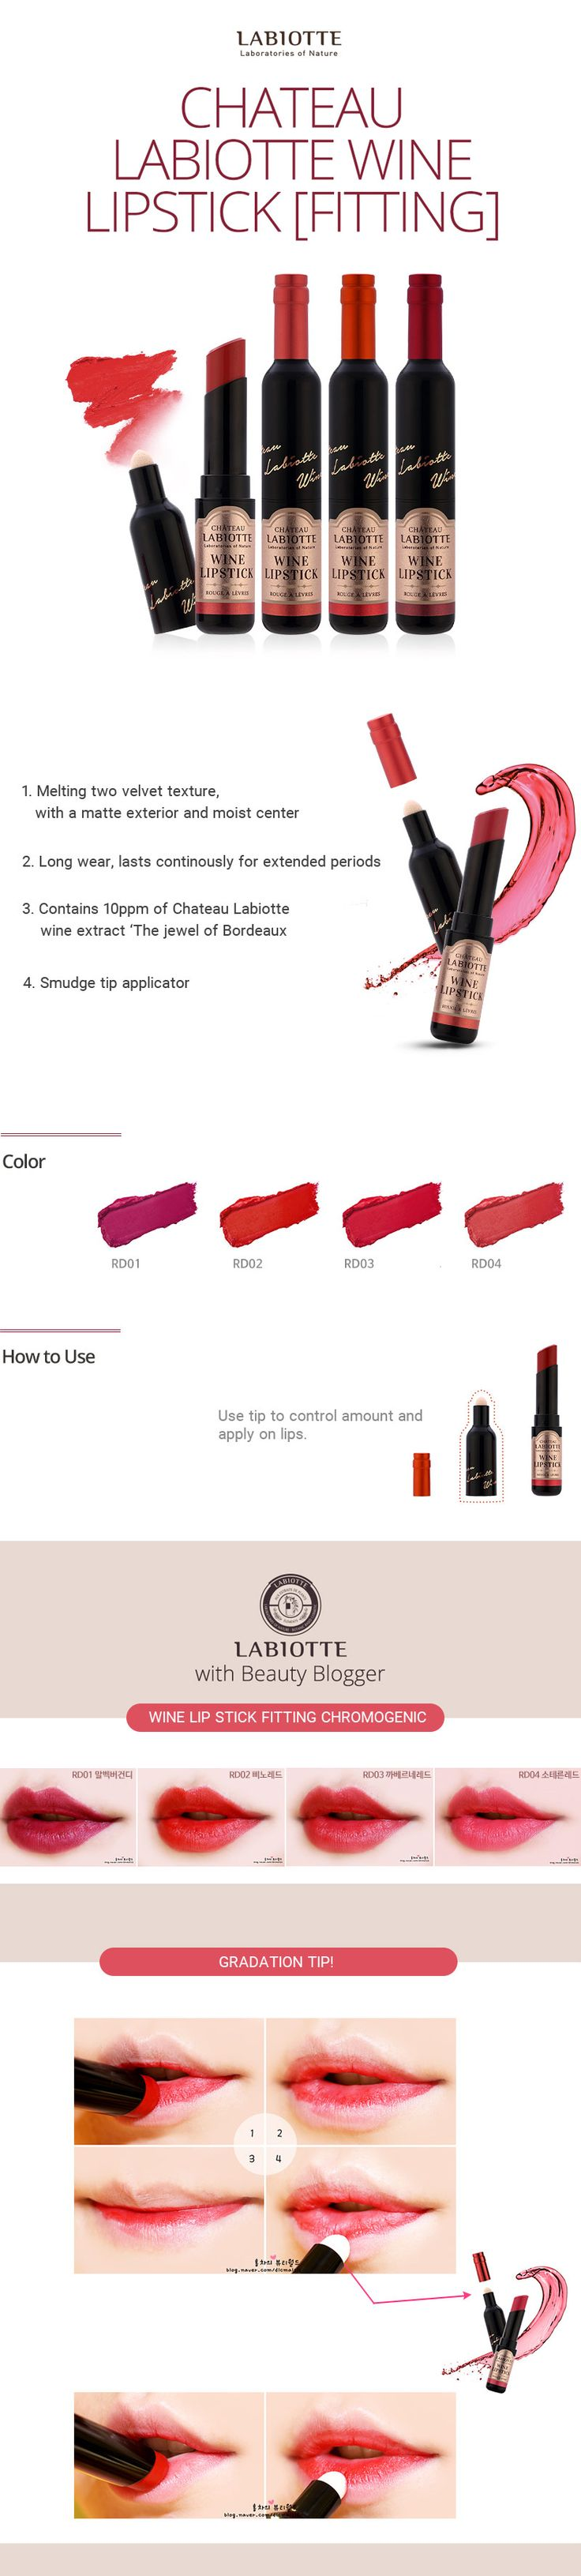 CHATEAU LABIOTTE Lipsticks and Lip tints | Best Korean Beauty Products | Holy Grail | Recommended Cosmetics Lipsticks